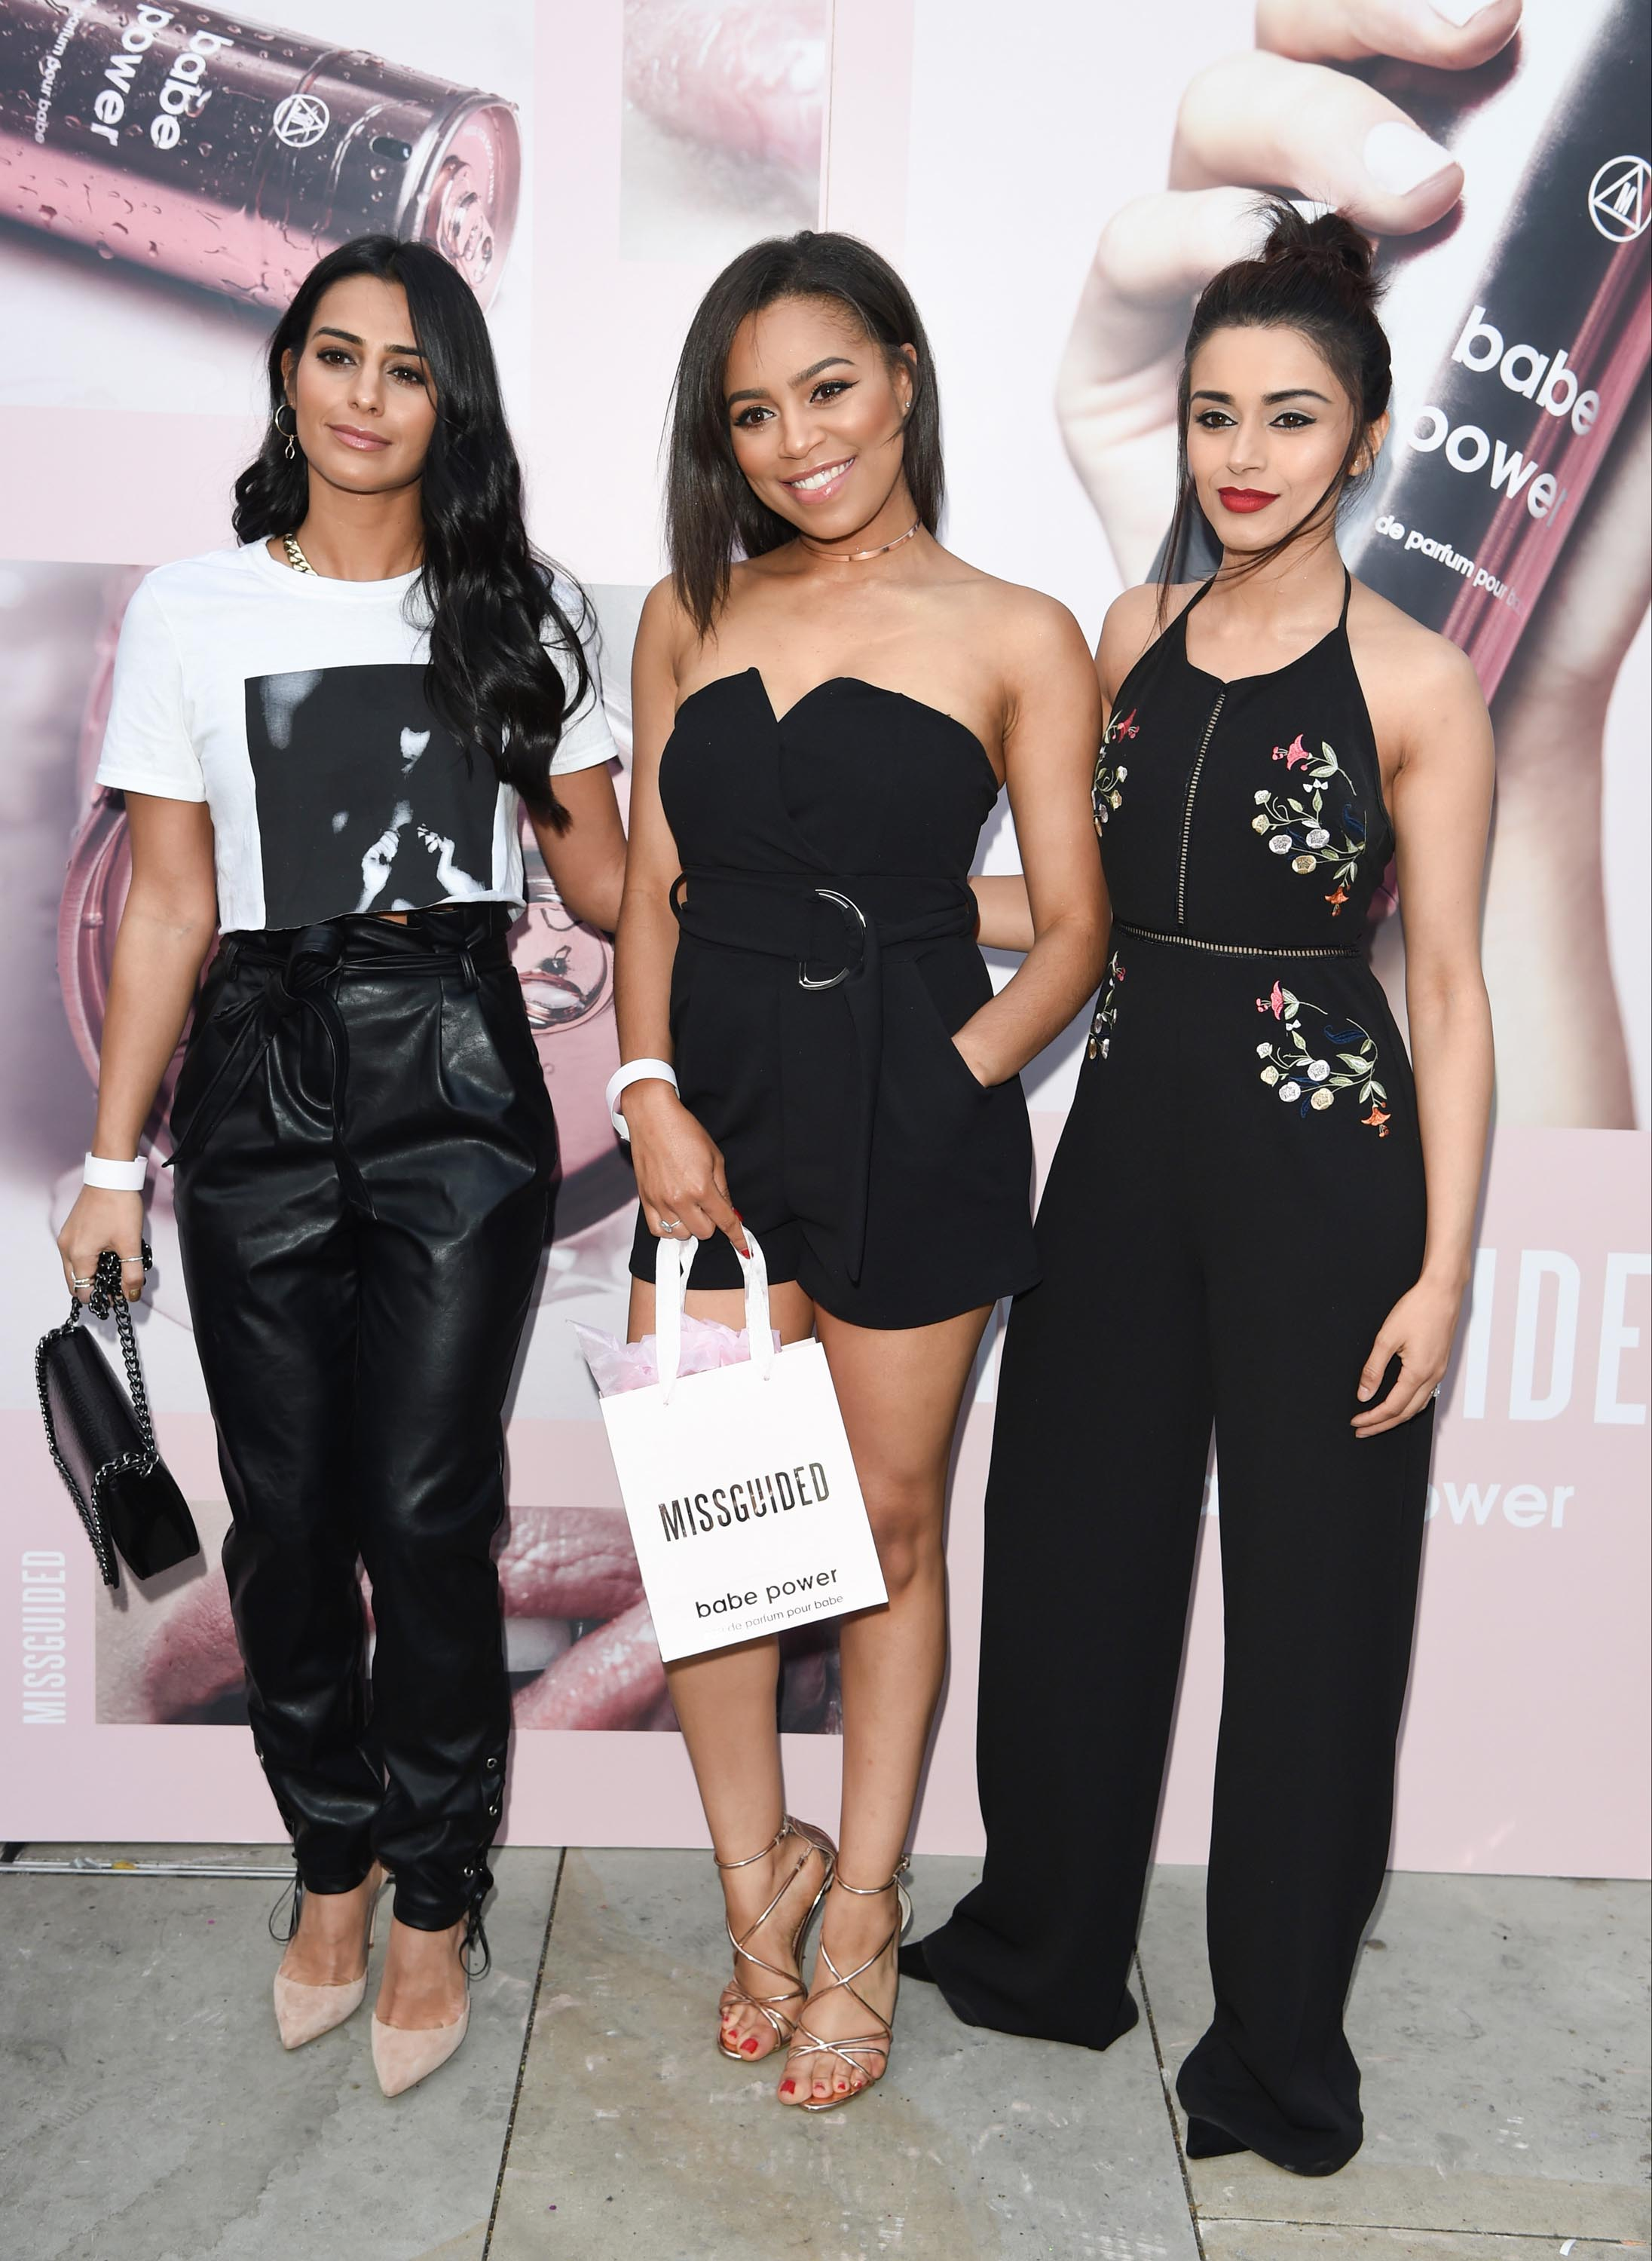 Sair Khan attends Missguided Babe Power Perfume Launch